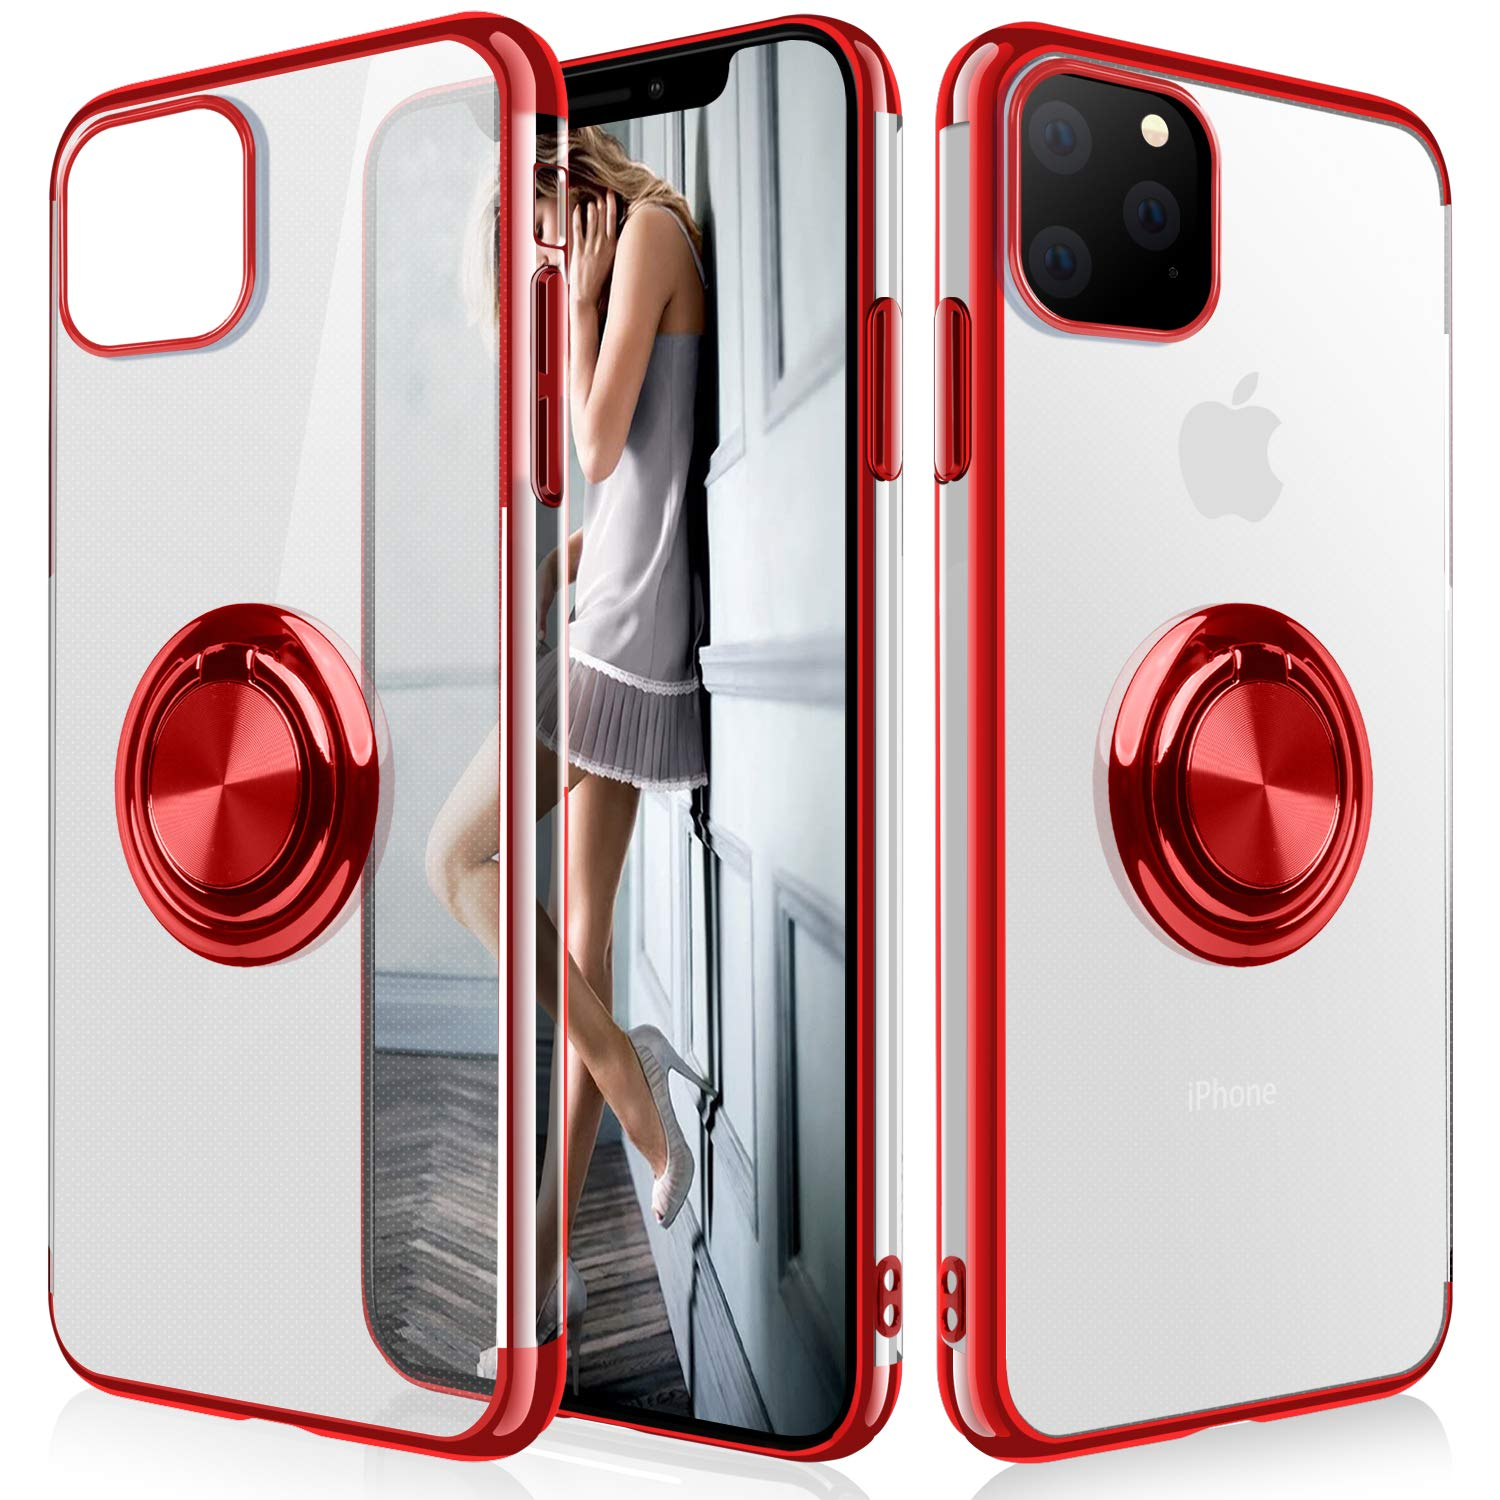 iPhone 11 Pro Max Case,WATACHE Clear Crystal Ultra Slim Soft TPU Electroplated Frame Case Cover with Built-in 360 Rotatable Ring Kickstand for iPhone 11 Pro Max,Red